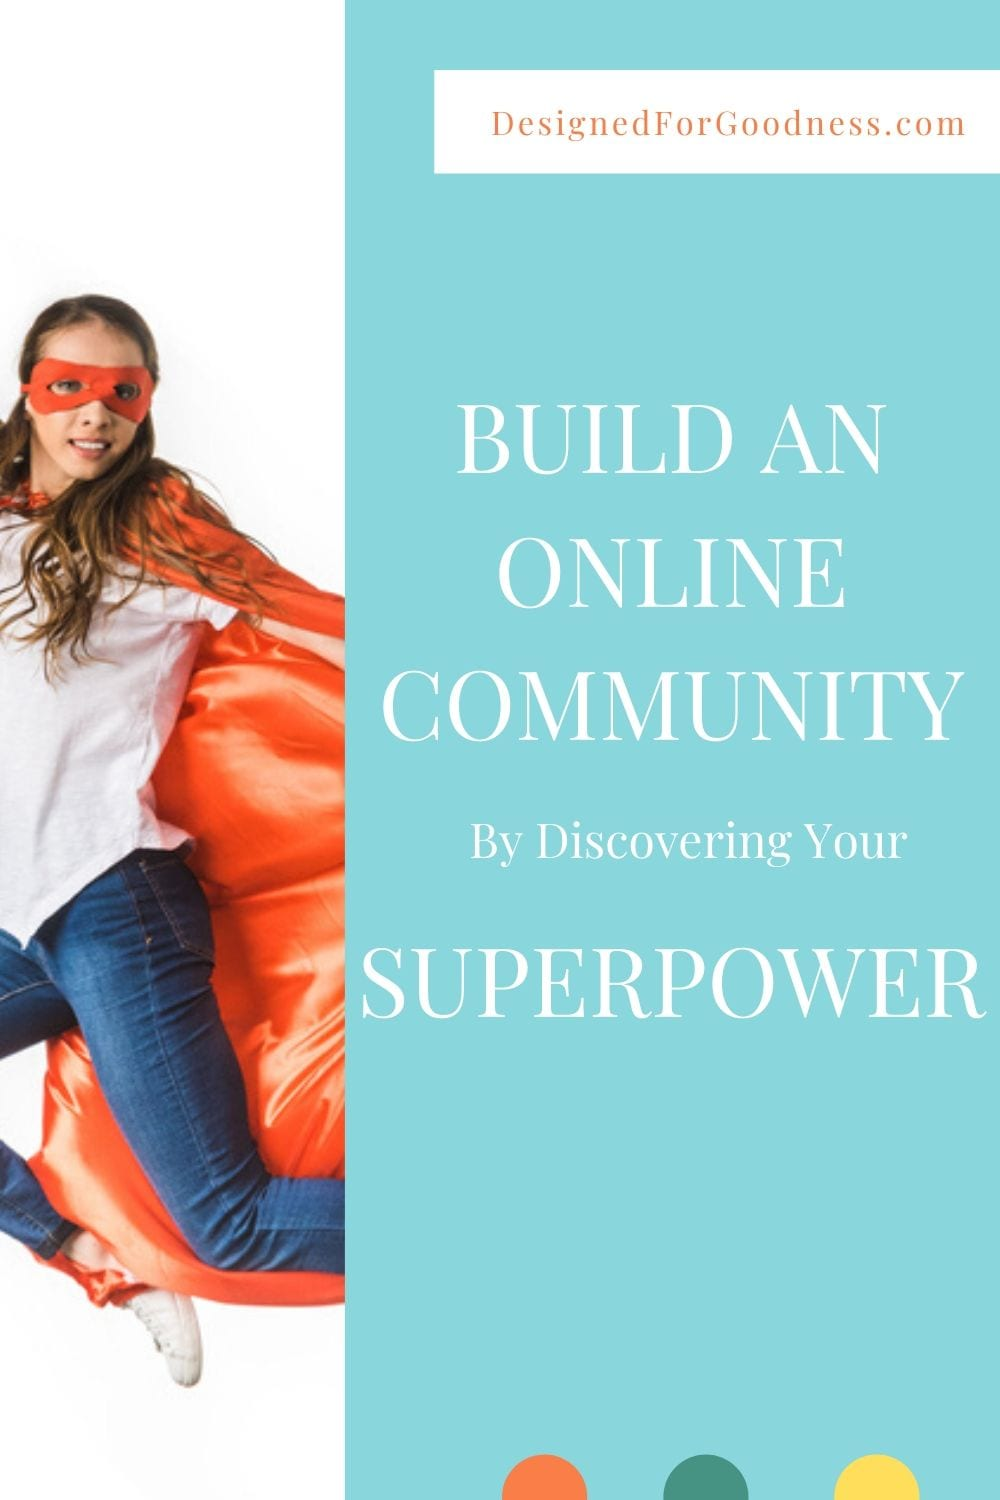 How to build a tribe: Focus on your superpower